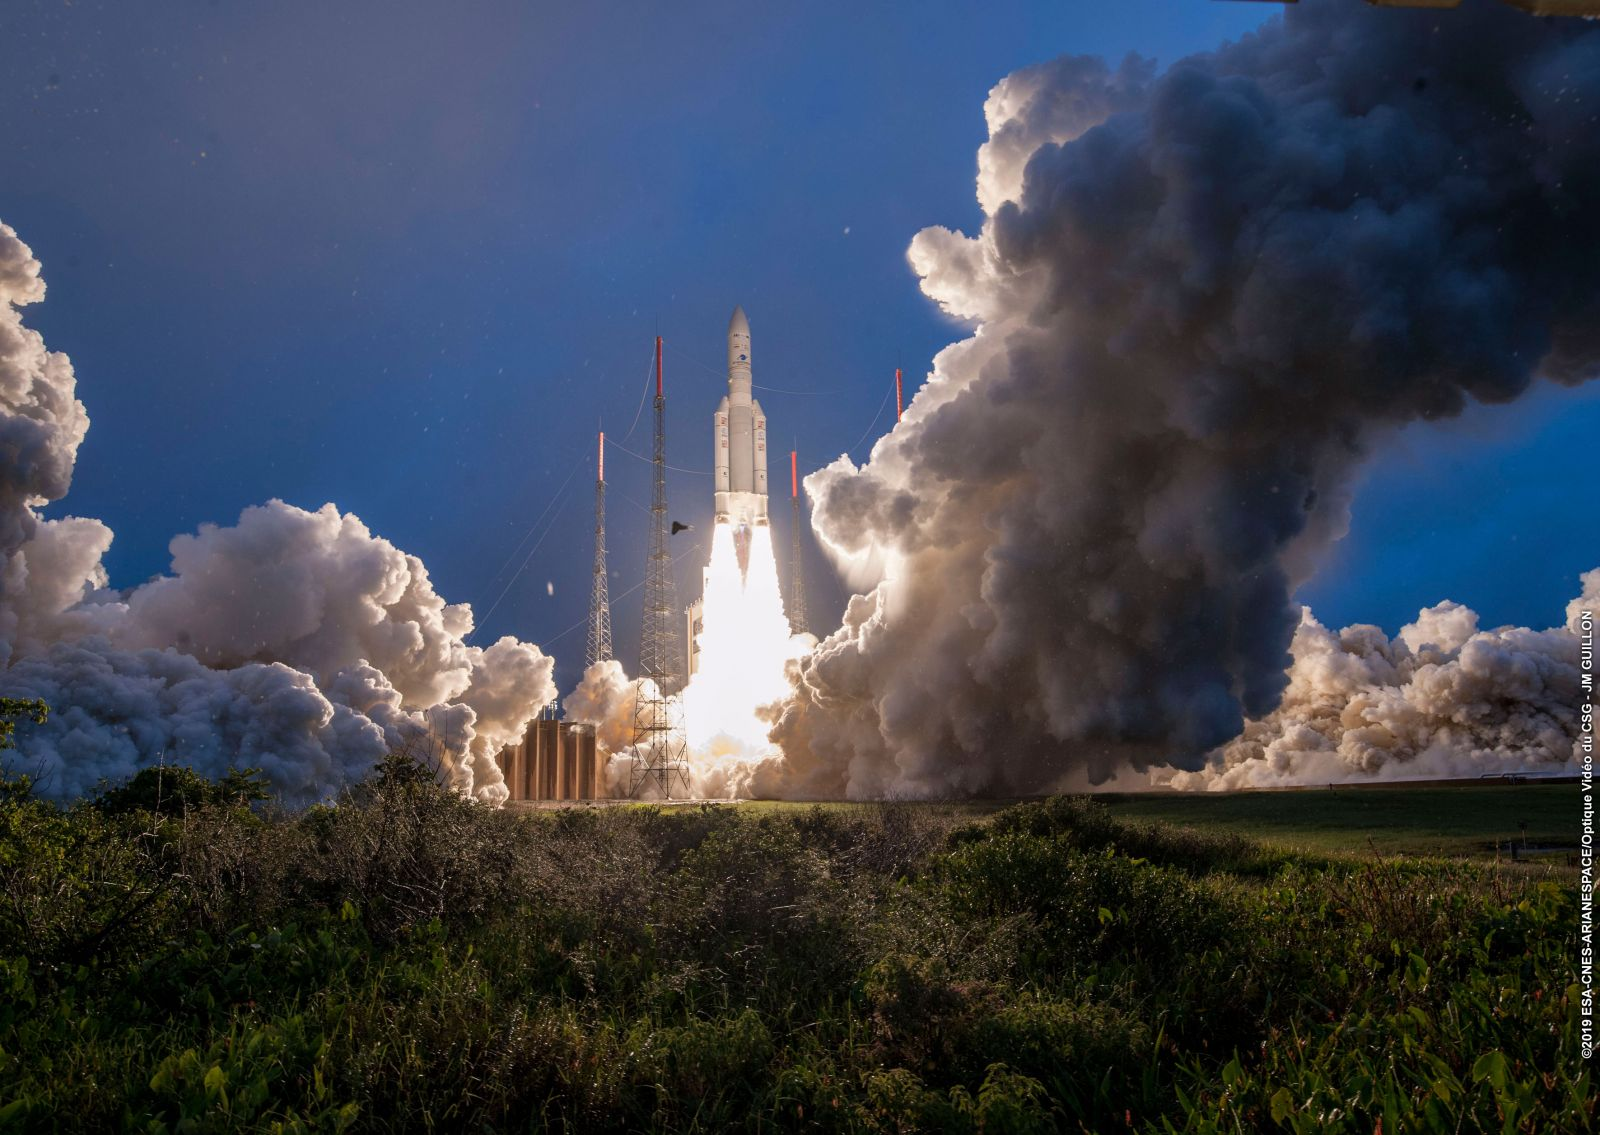 An Ariane 5 rocket rises skyward to send two communications satellites into geostationary orbit. Photo Credit: Arianespace